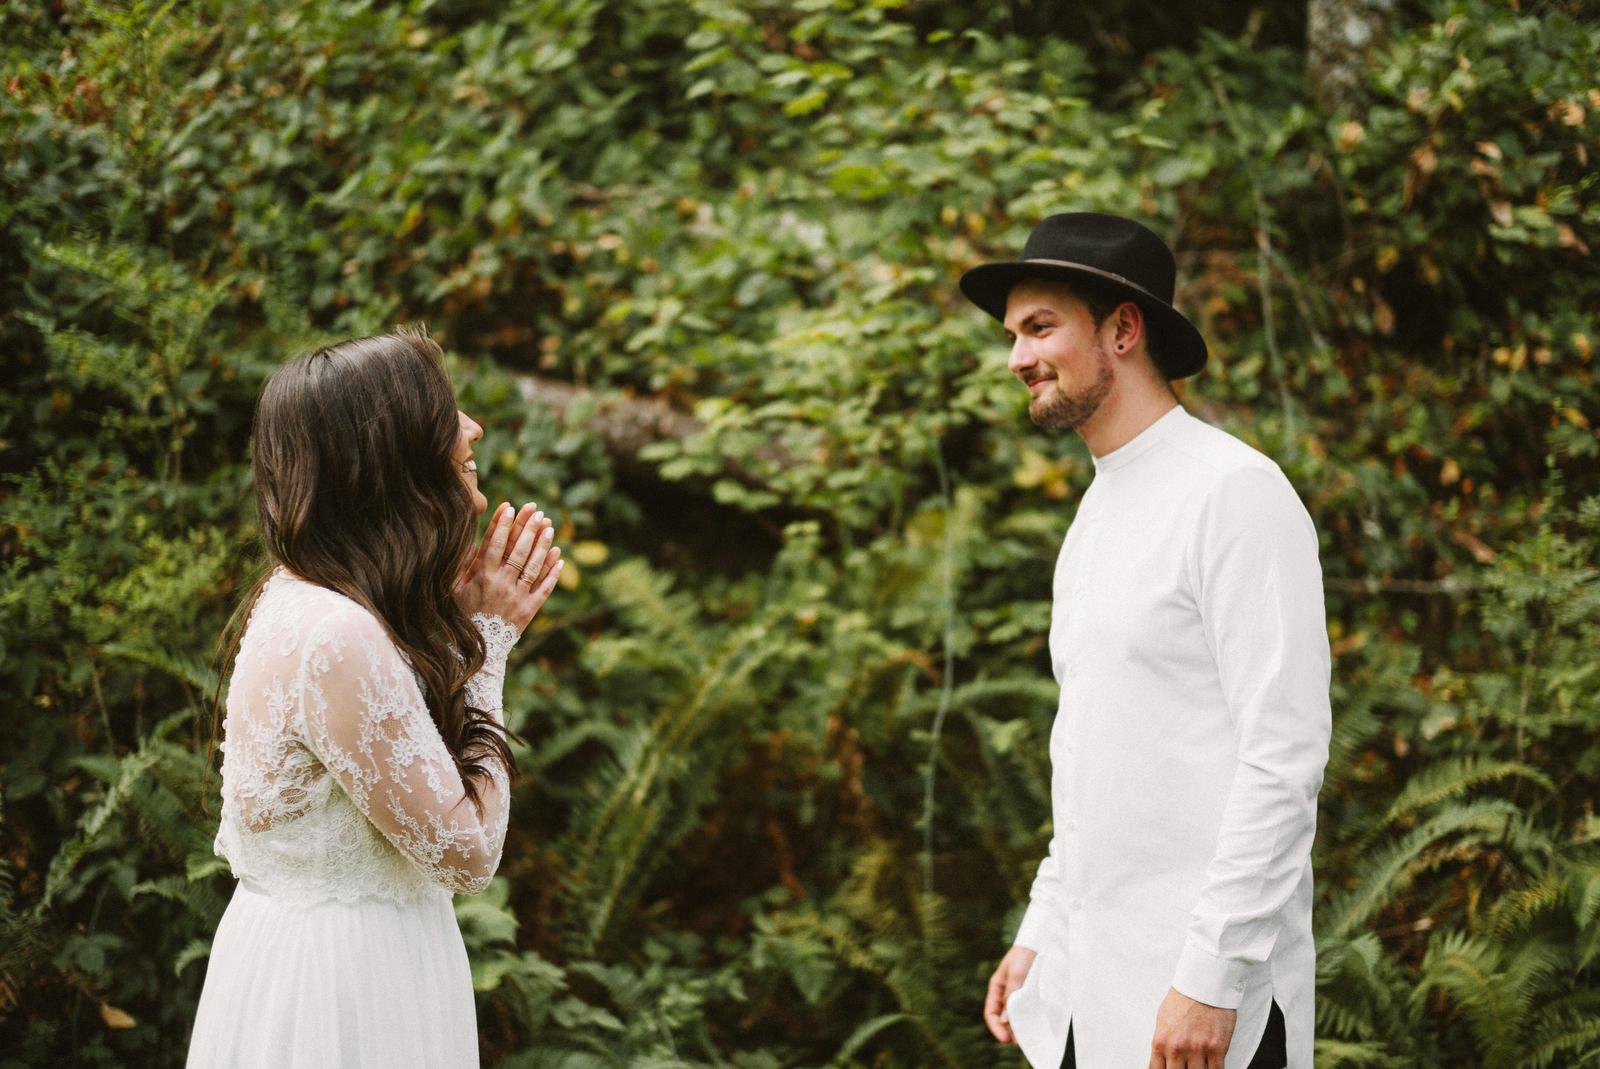 athena-and-camron-seattle-elopement-wedding-benj-haisch-rattlesnake-lake-christian-couple-goals5